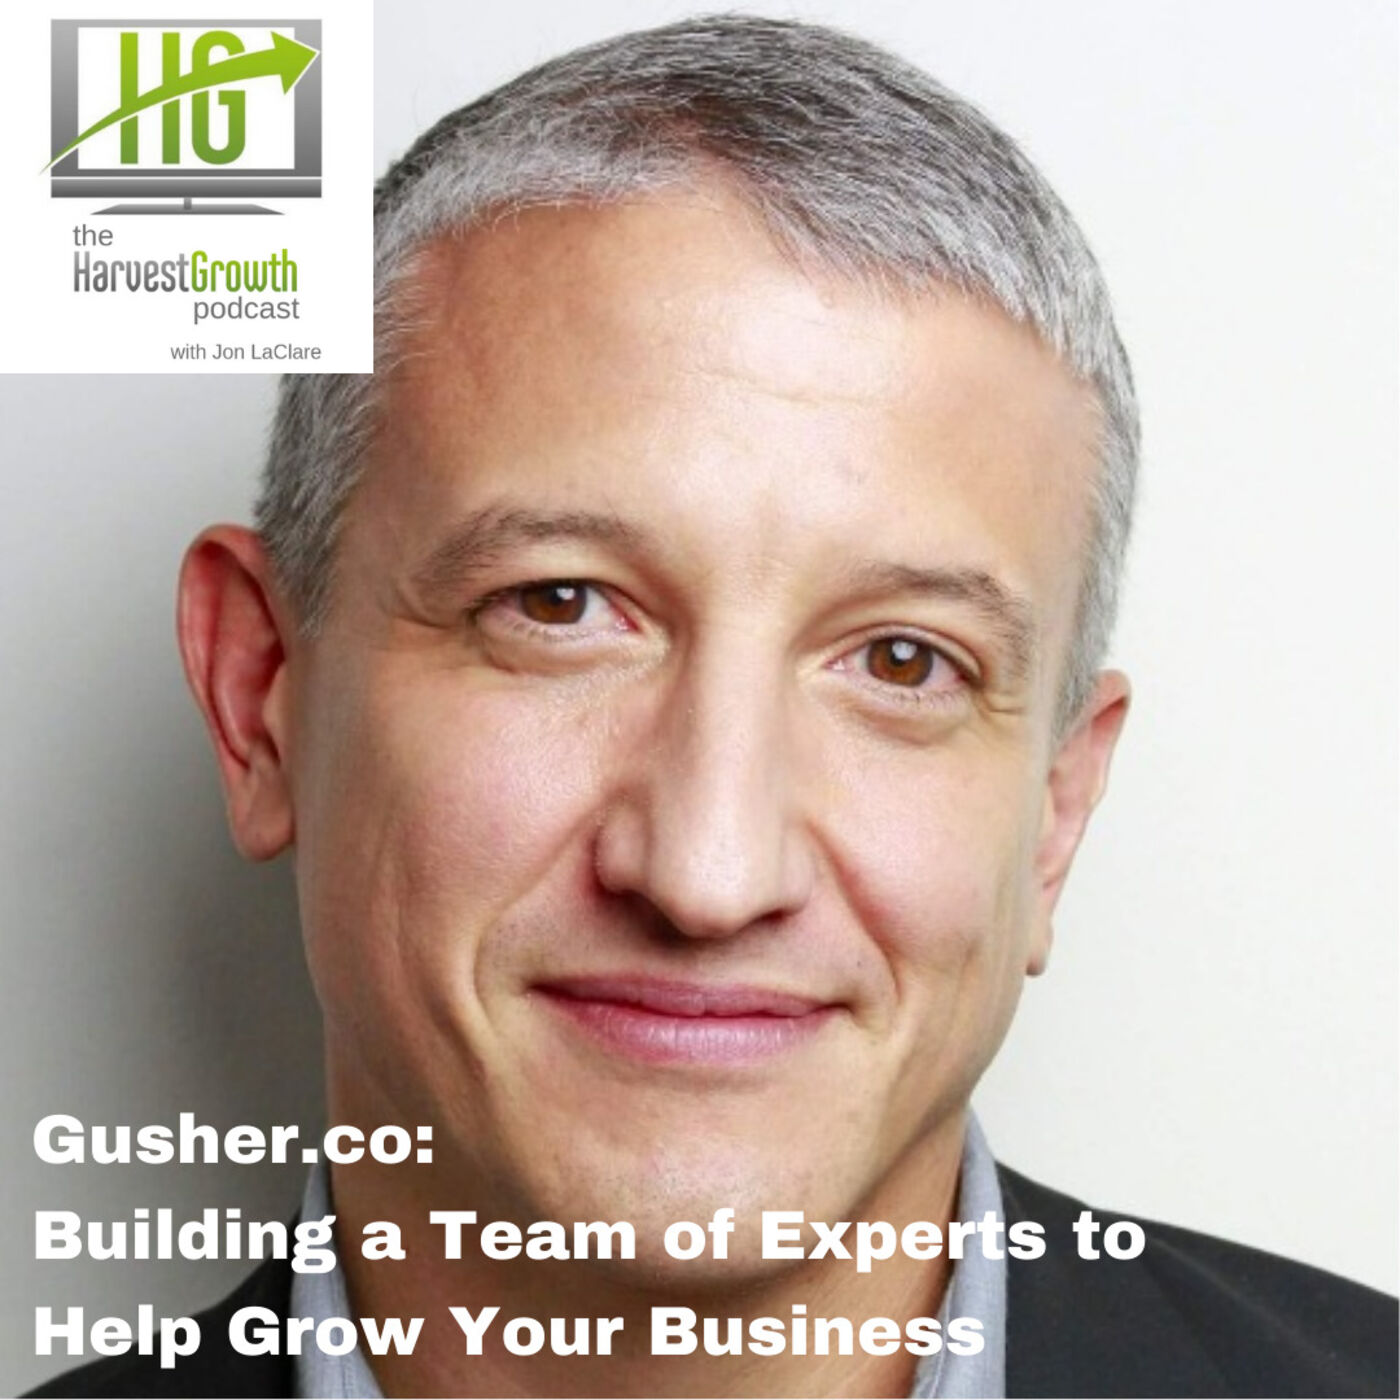 Gusher.co: Building a Team of Experts to Help Grow Your Business